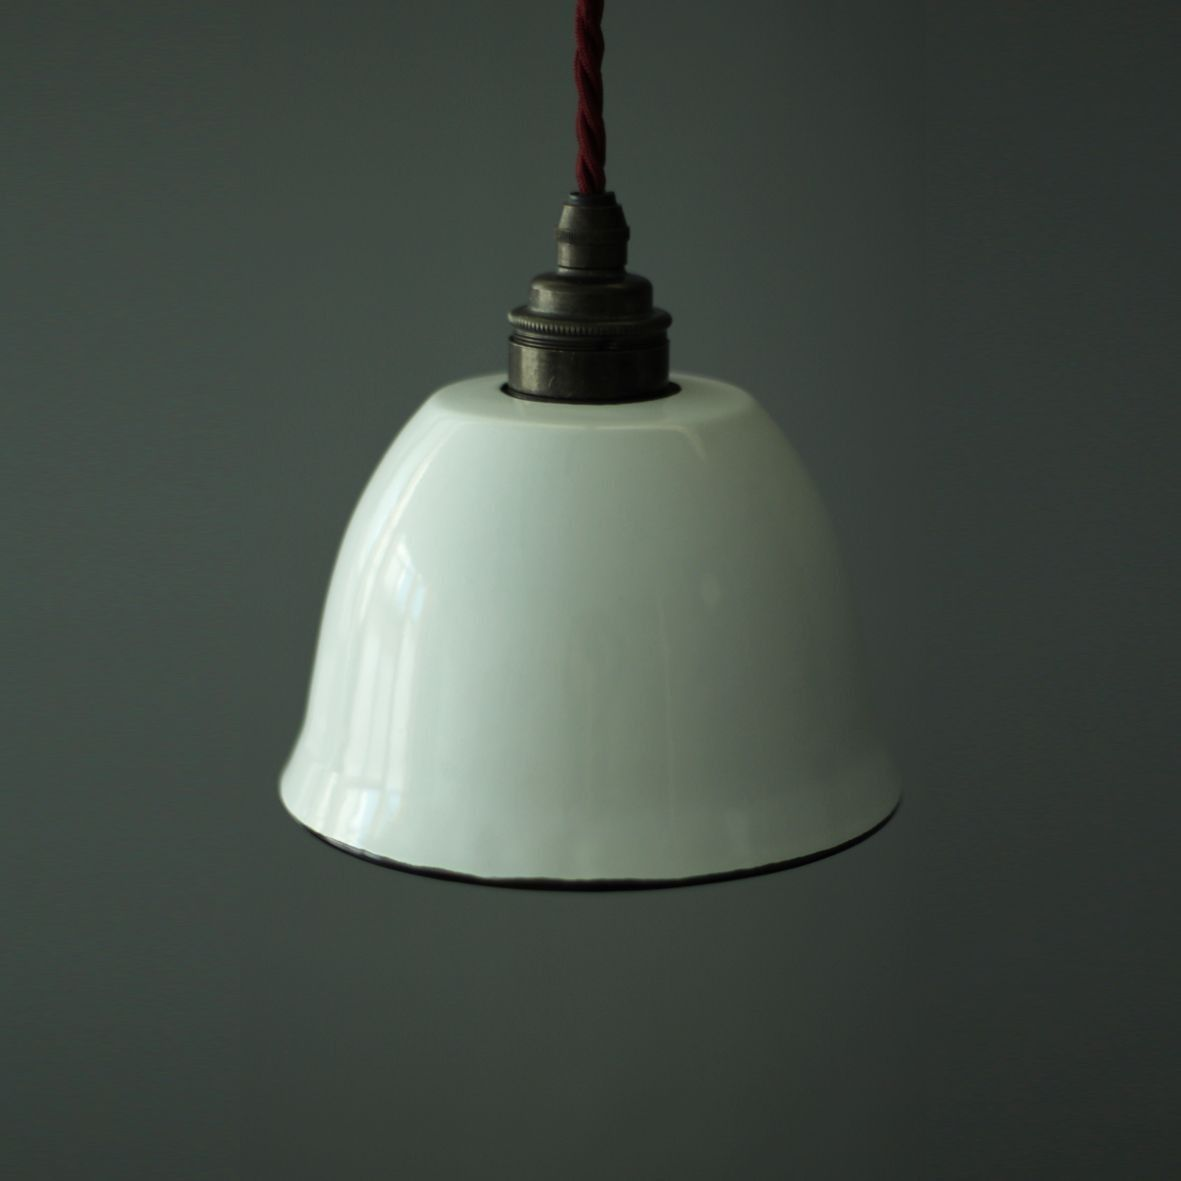 Small enamel lamp shade white view all lighting my new small enamel lamp shade white lighting aloadofball Gallery